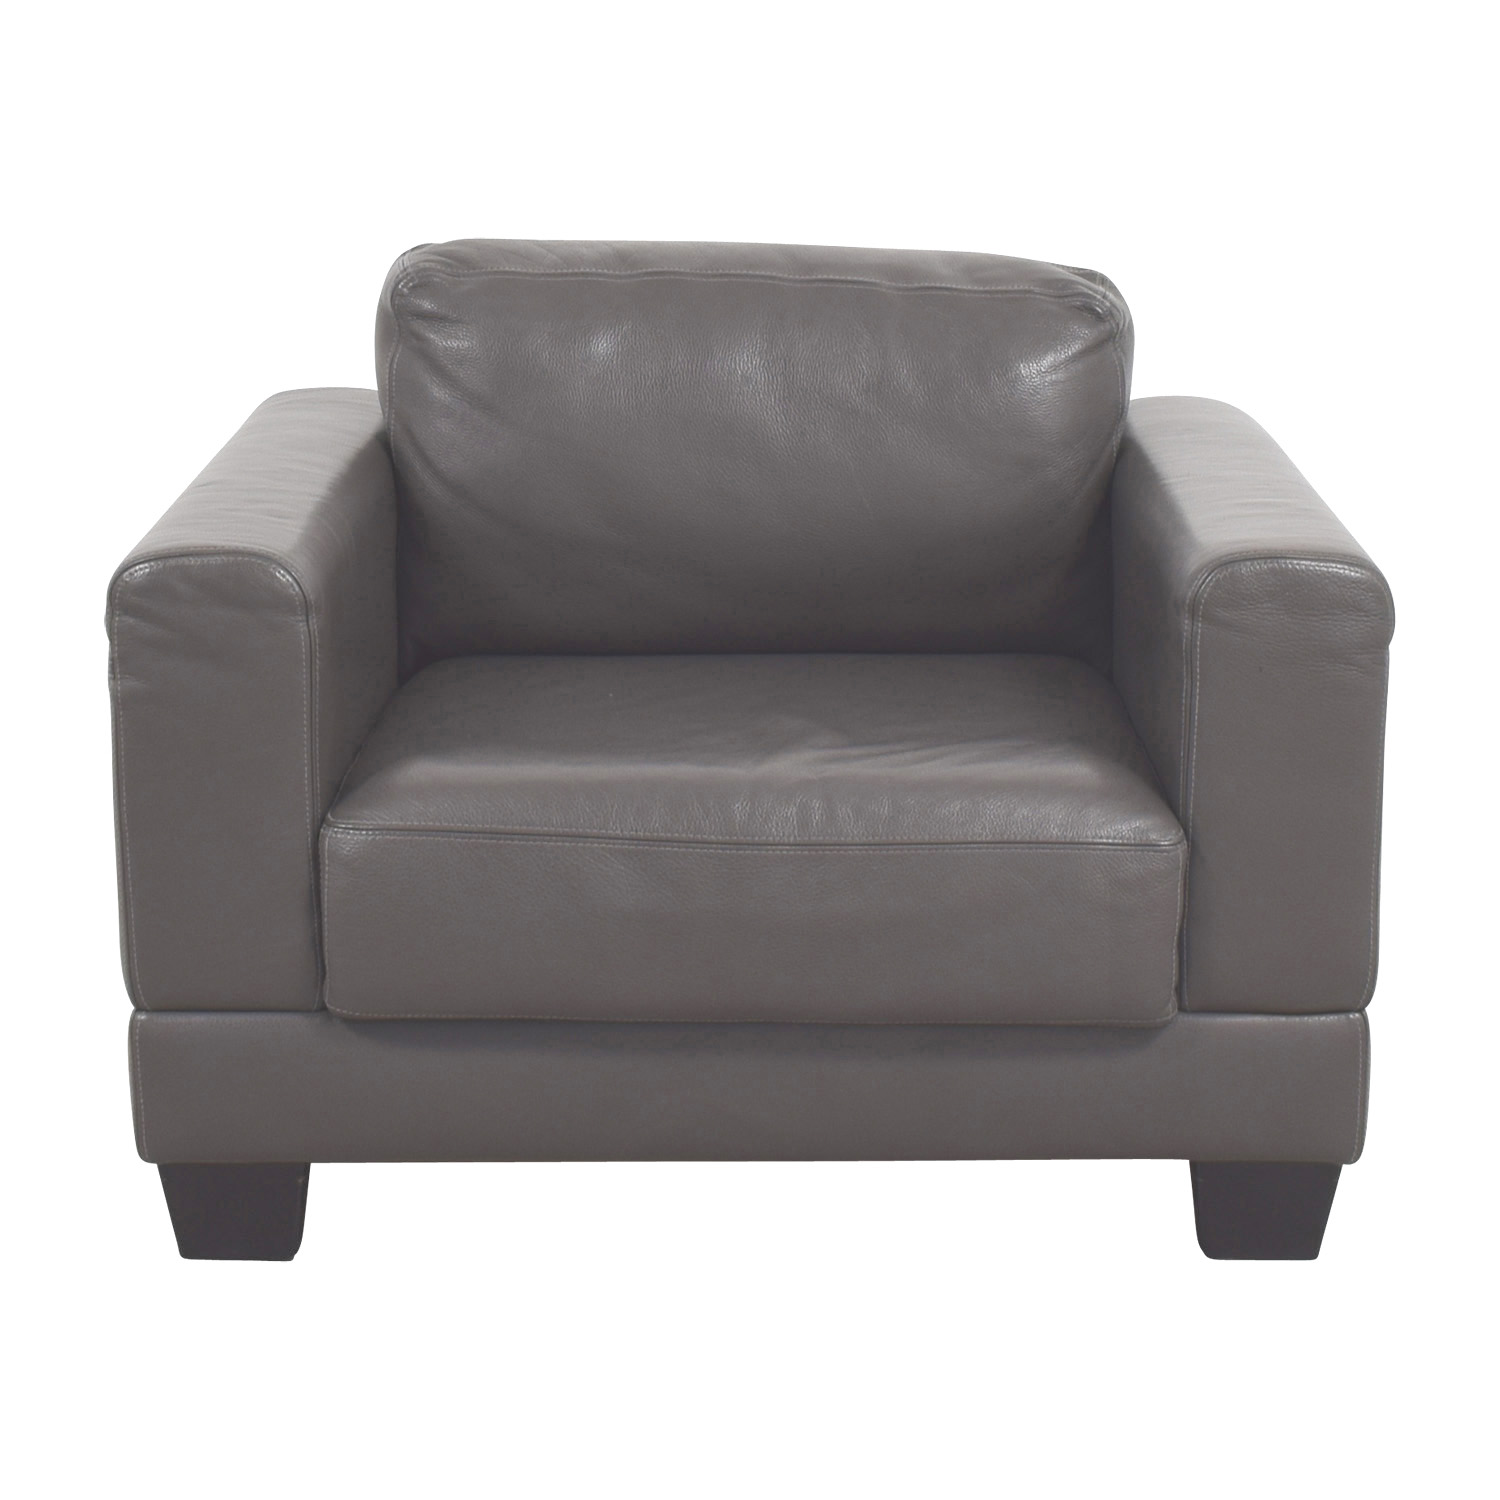 Gray Leather Armchair used